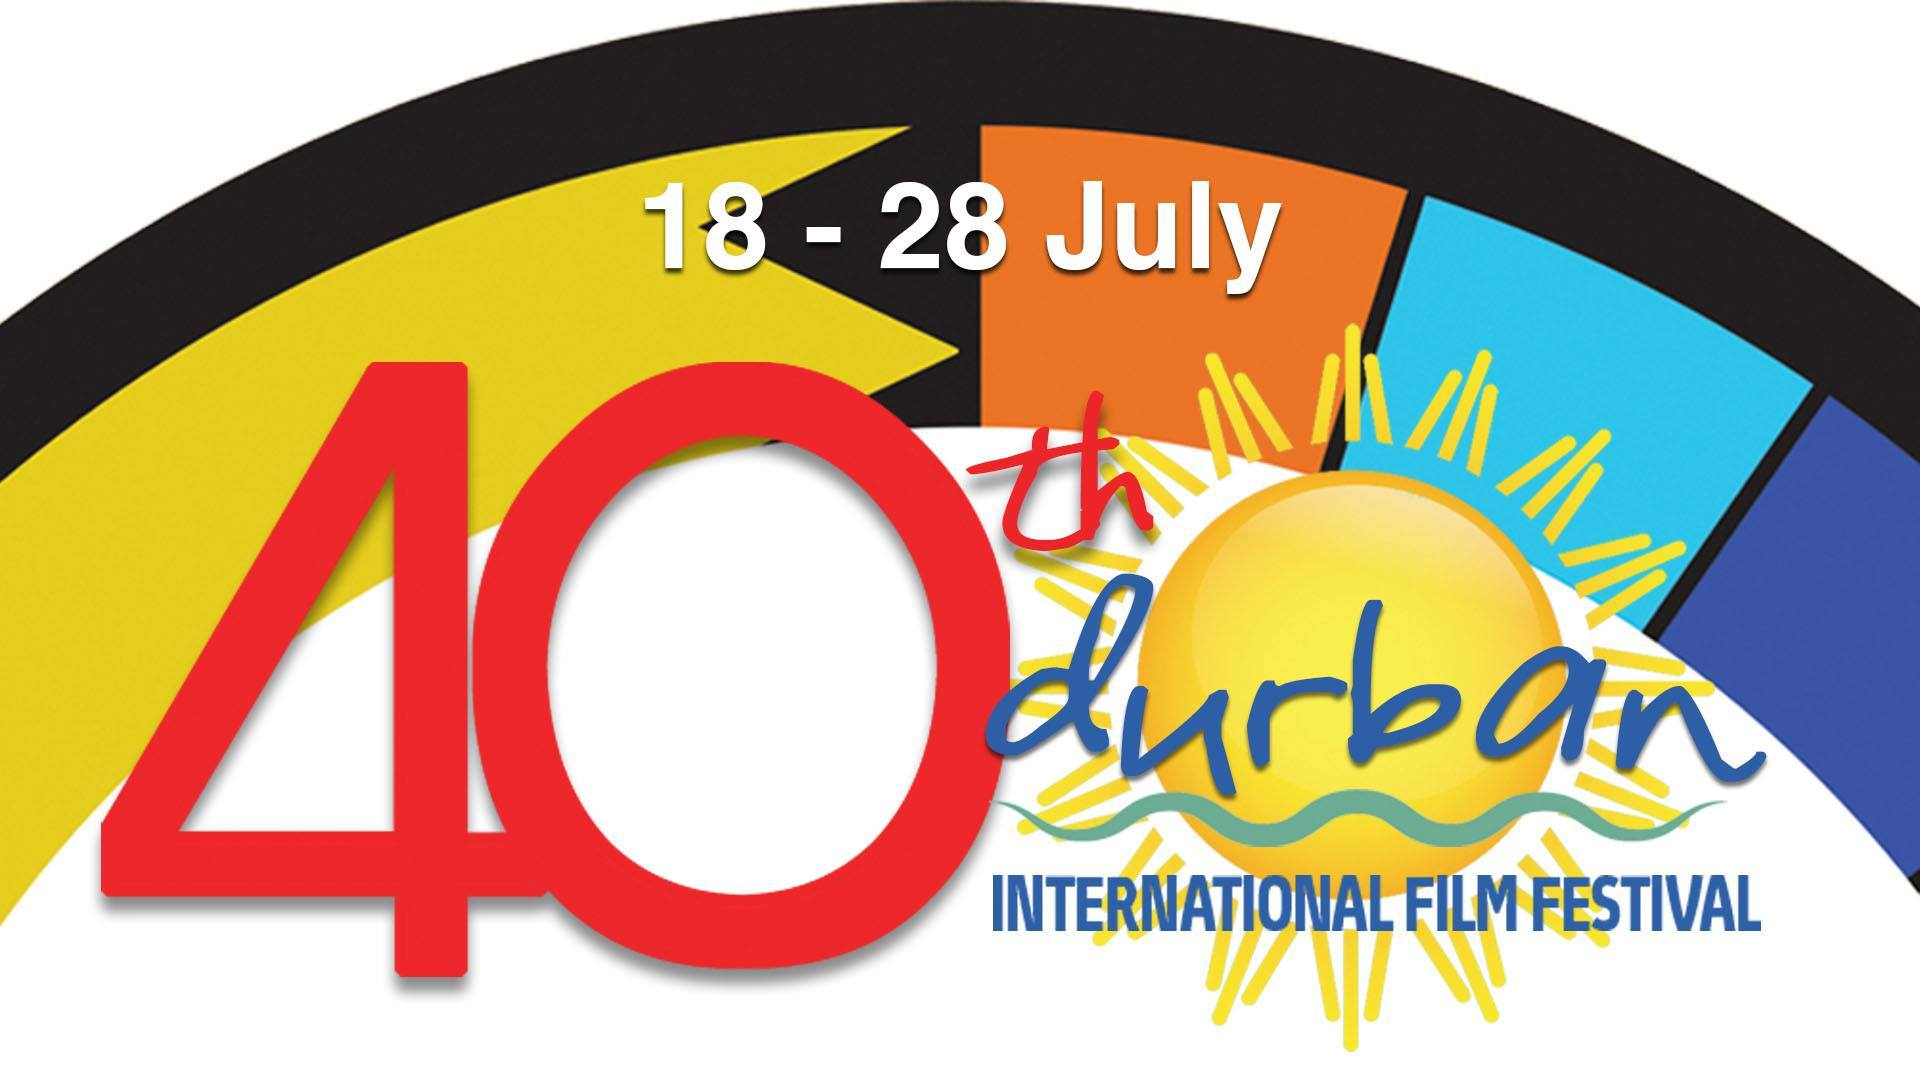 dURBAN iNTERNATIONAL fILM fESTIVA